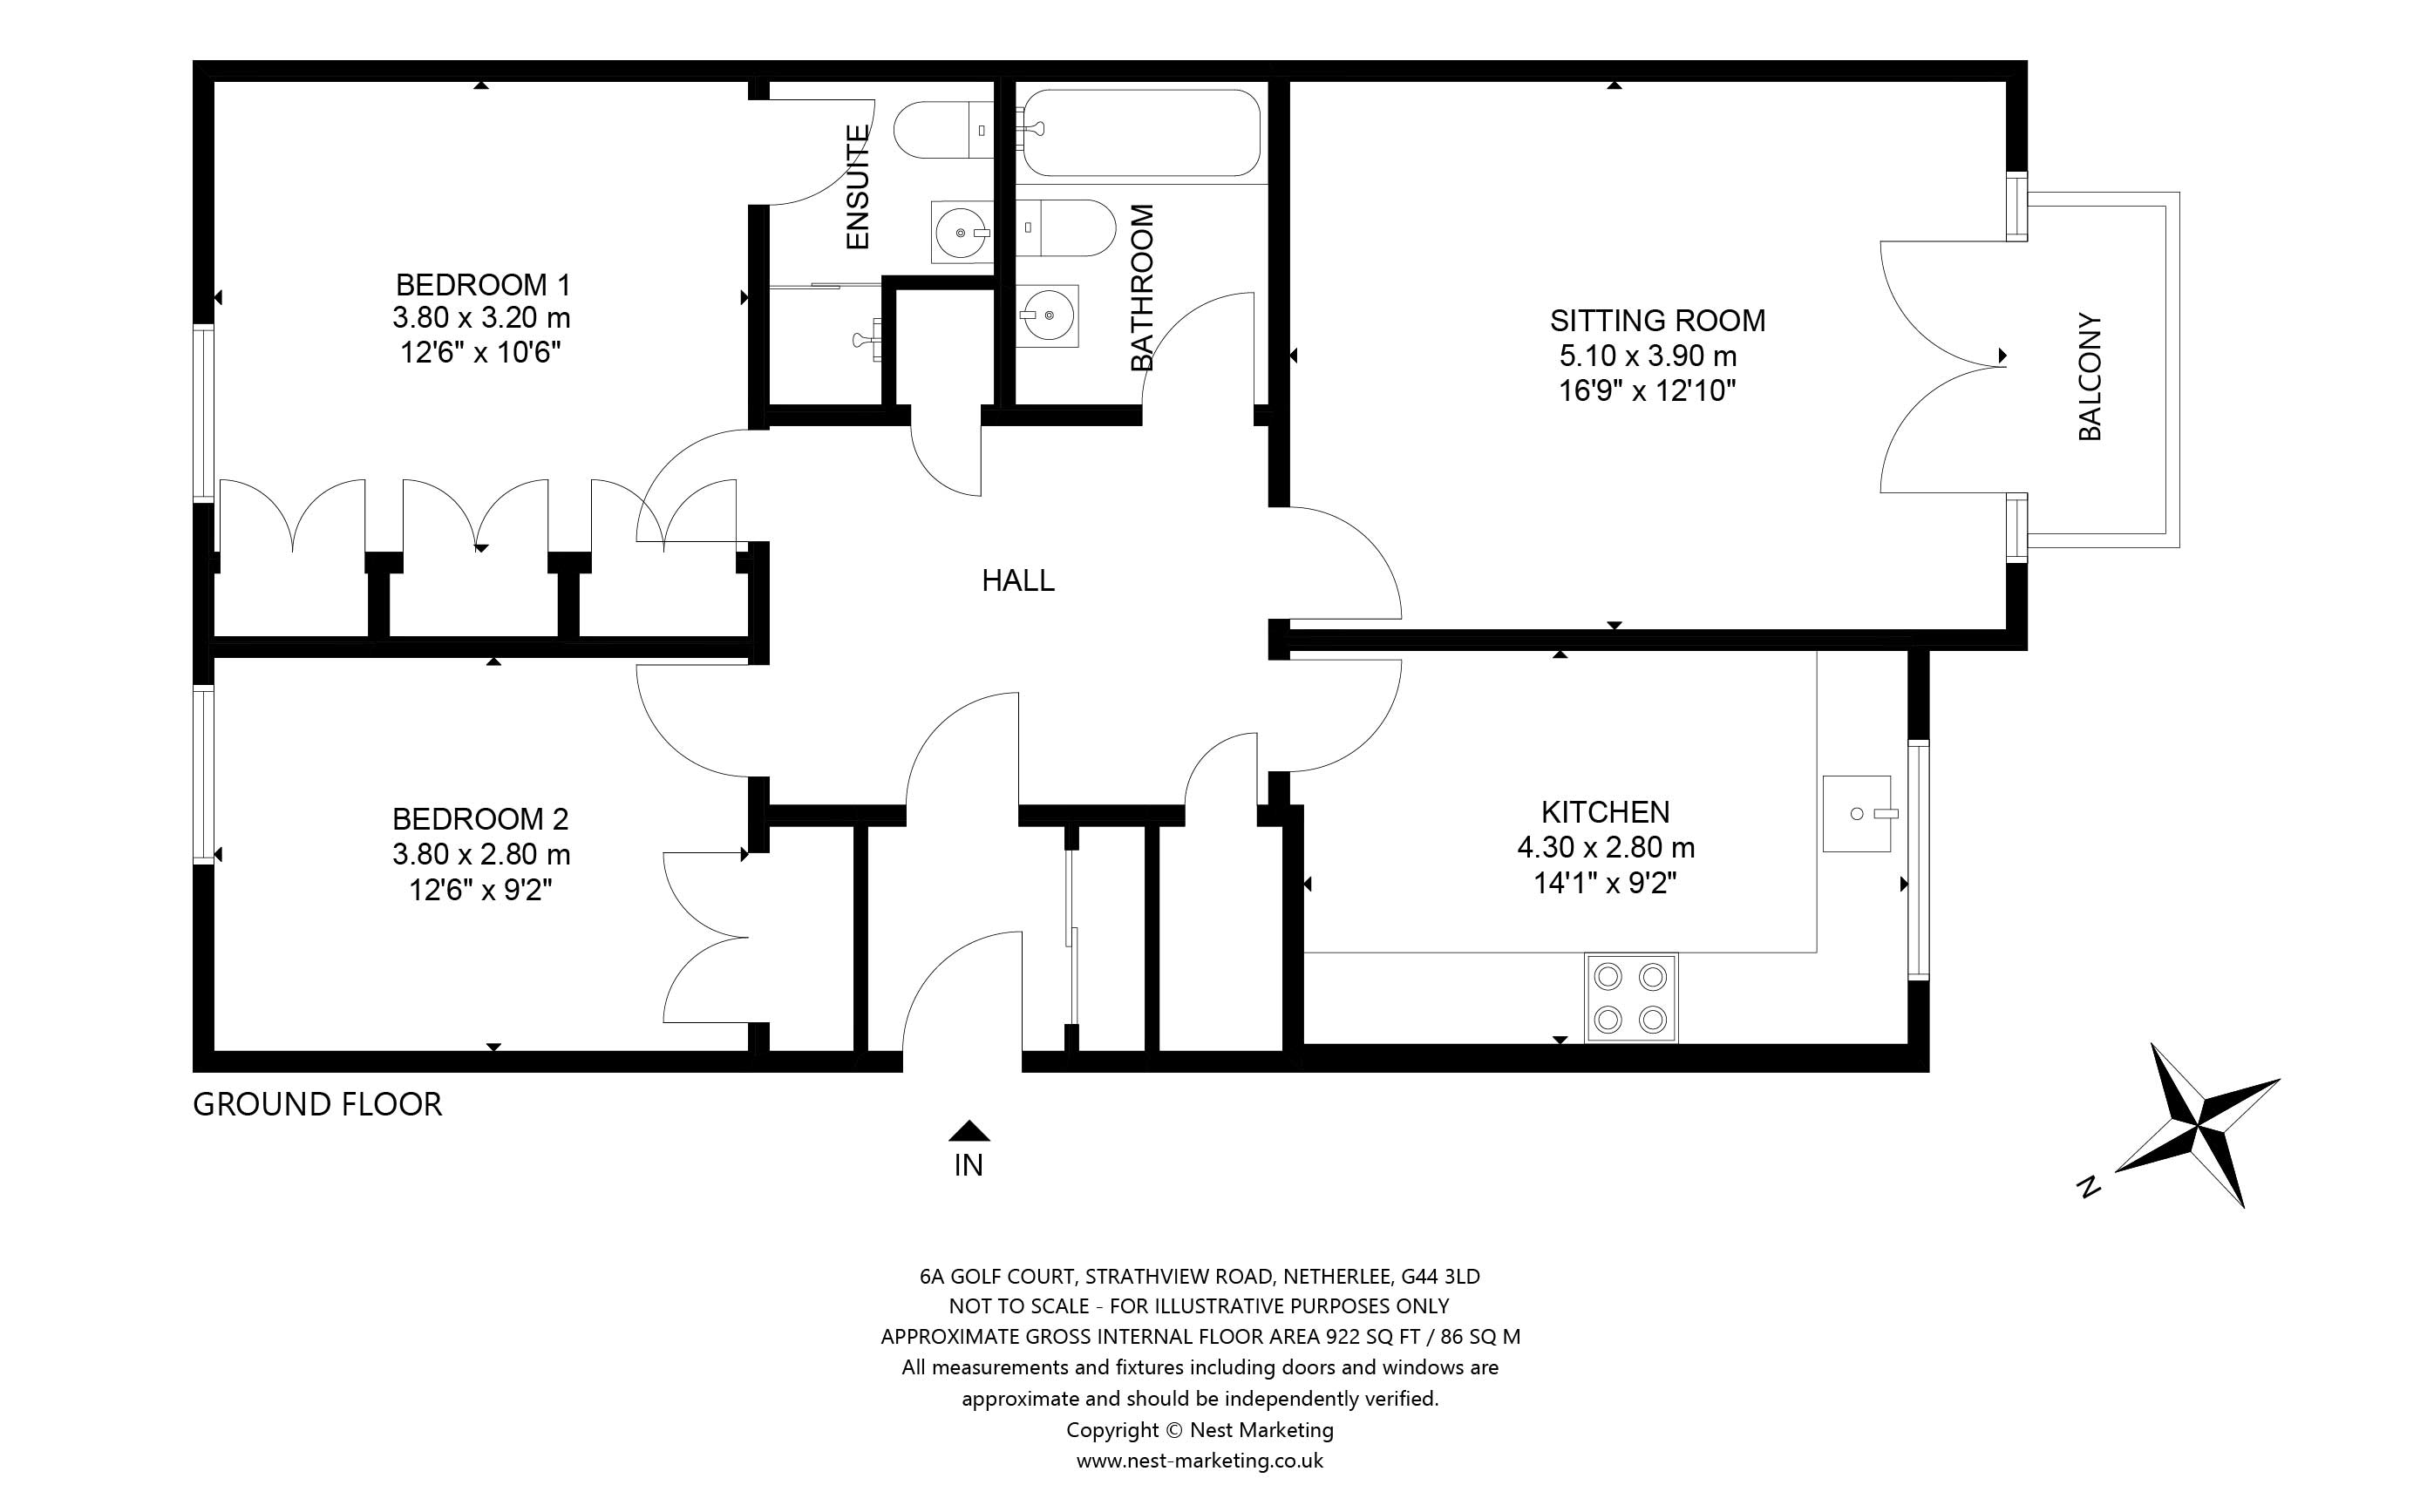 Floorplans for Strathview Park, Netherlee, Glasgow, G44